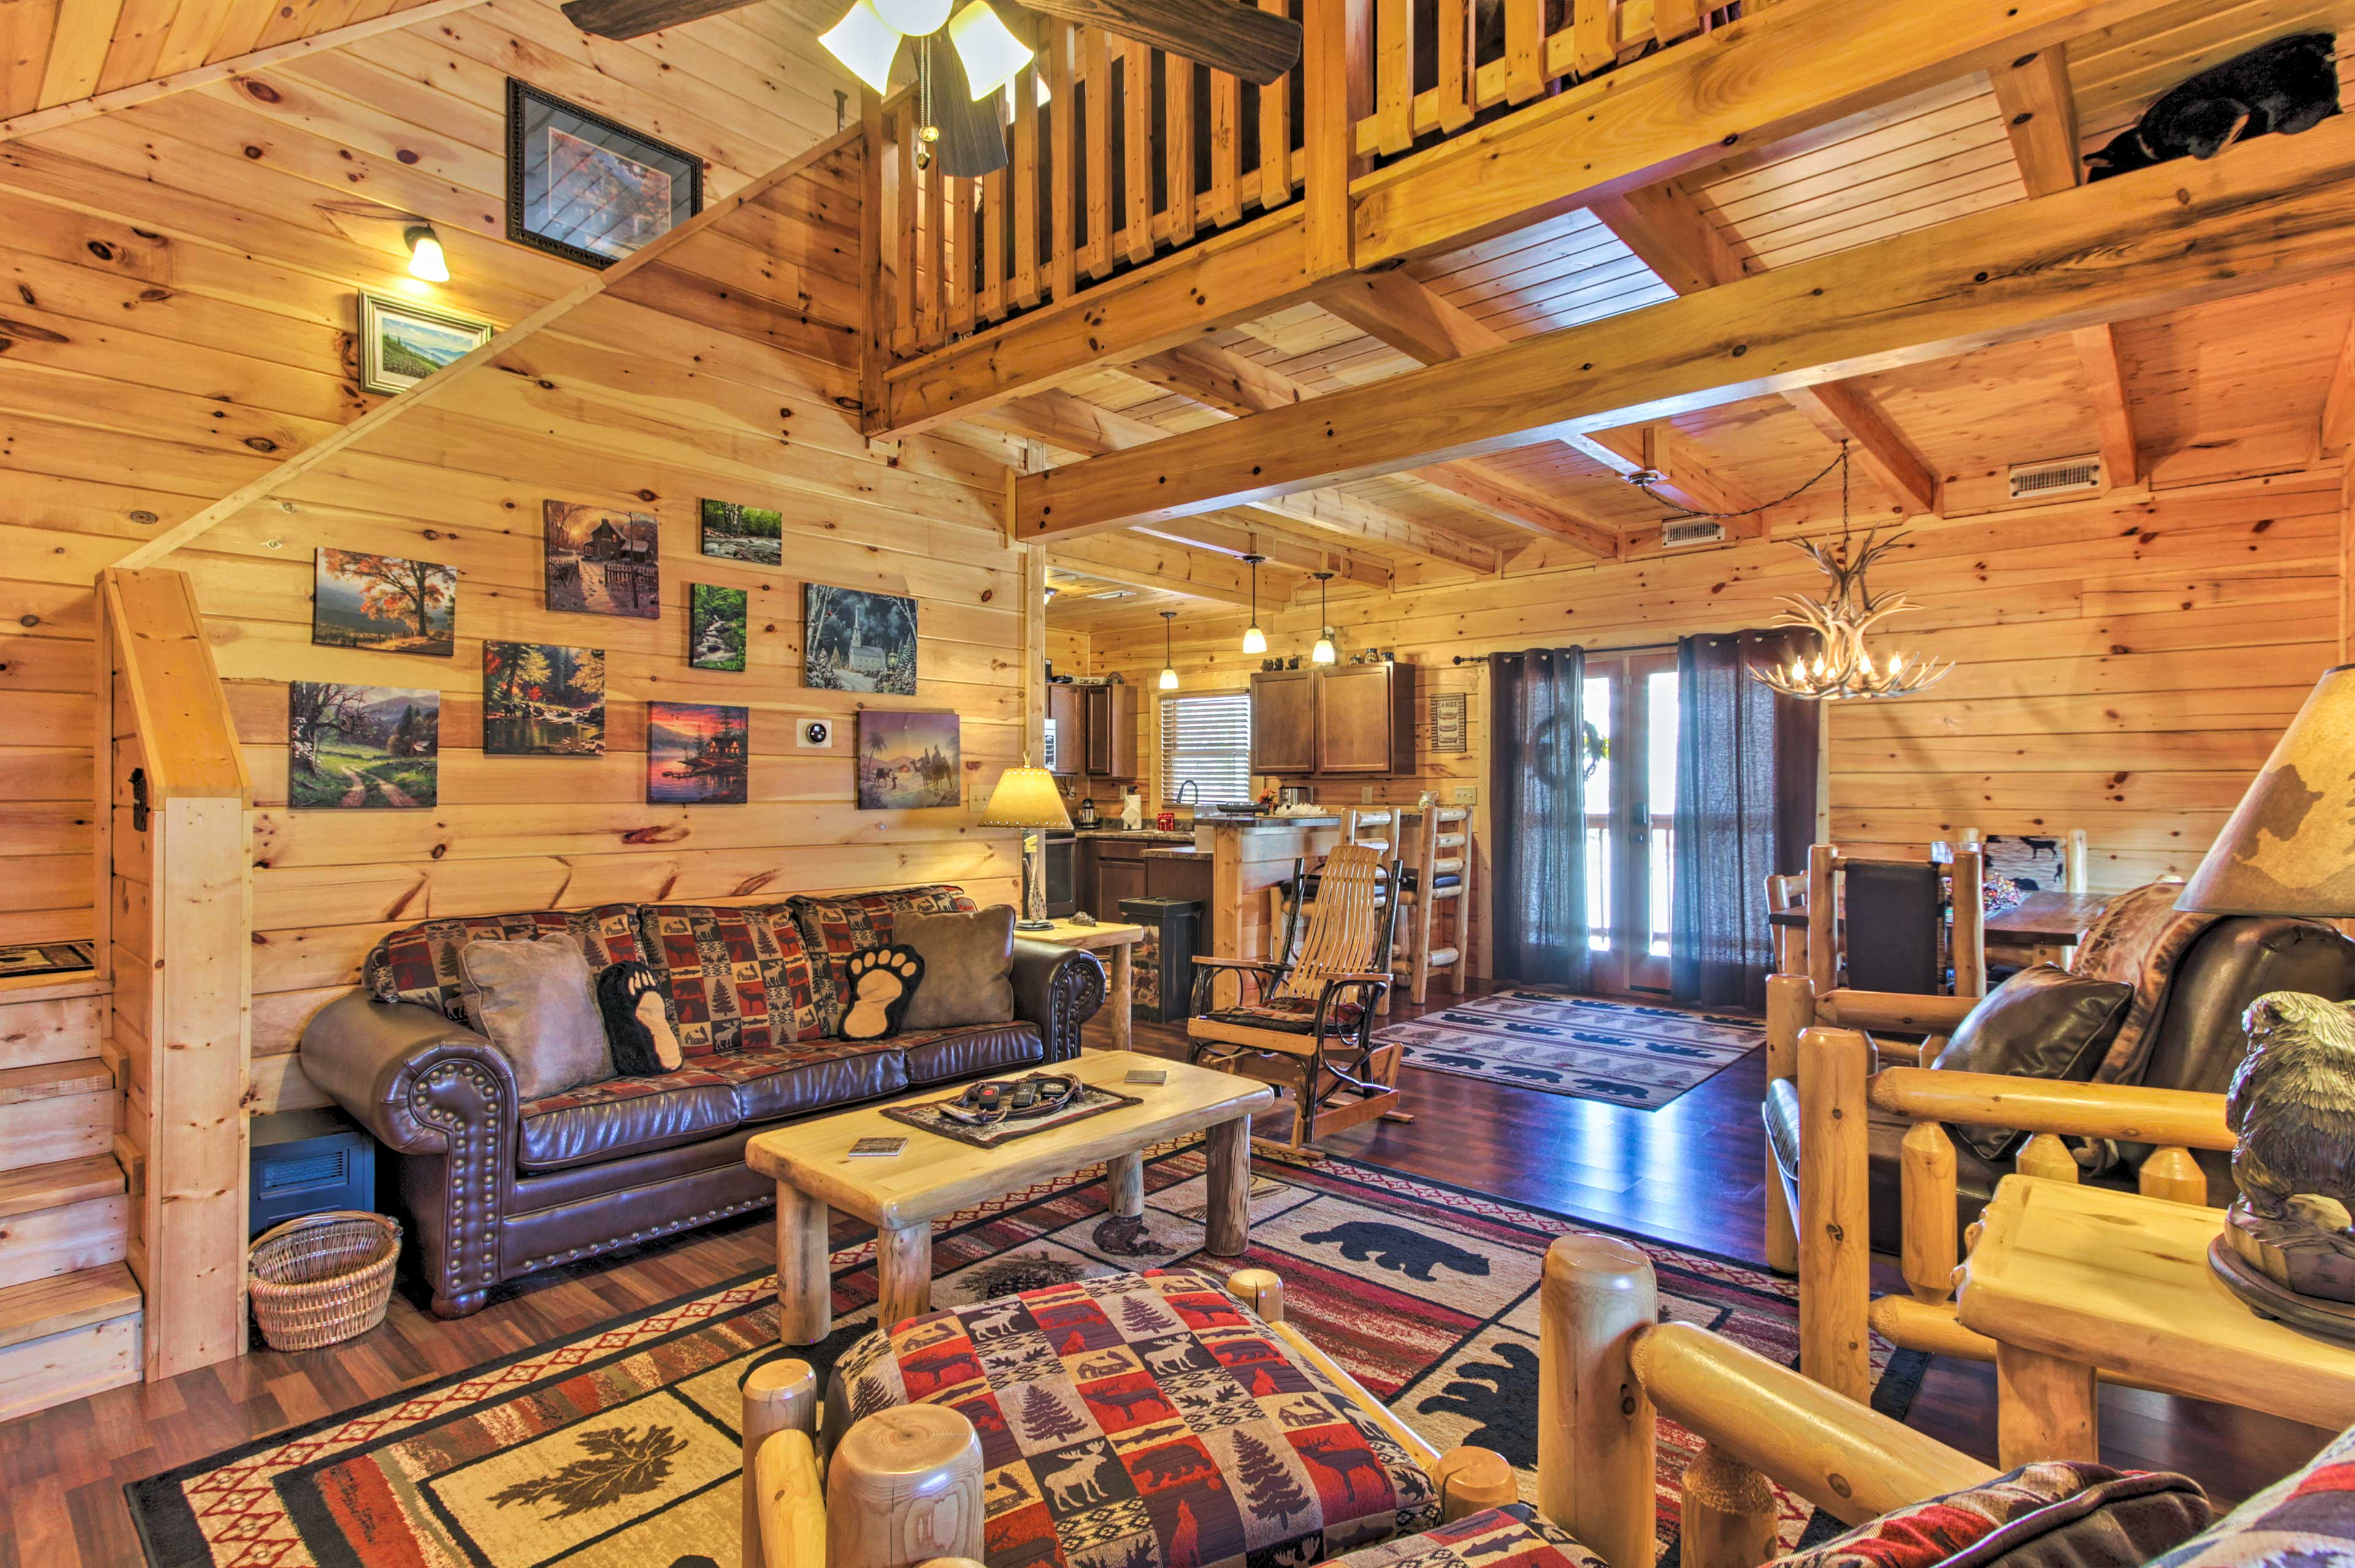 Rustic decor and portraits of scenic landscapes highlight the living room.